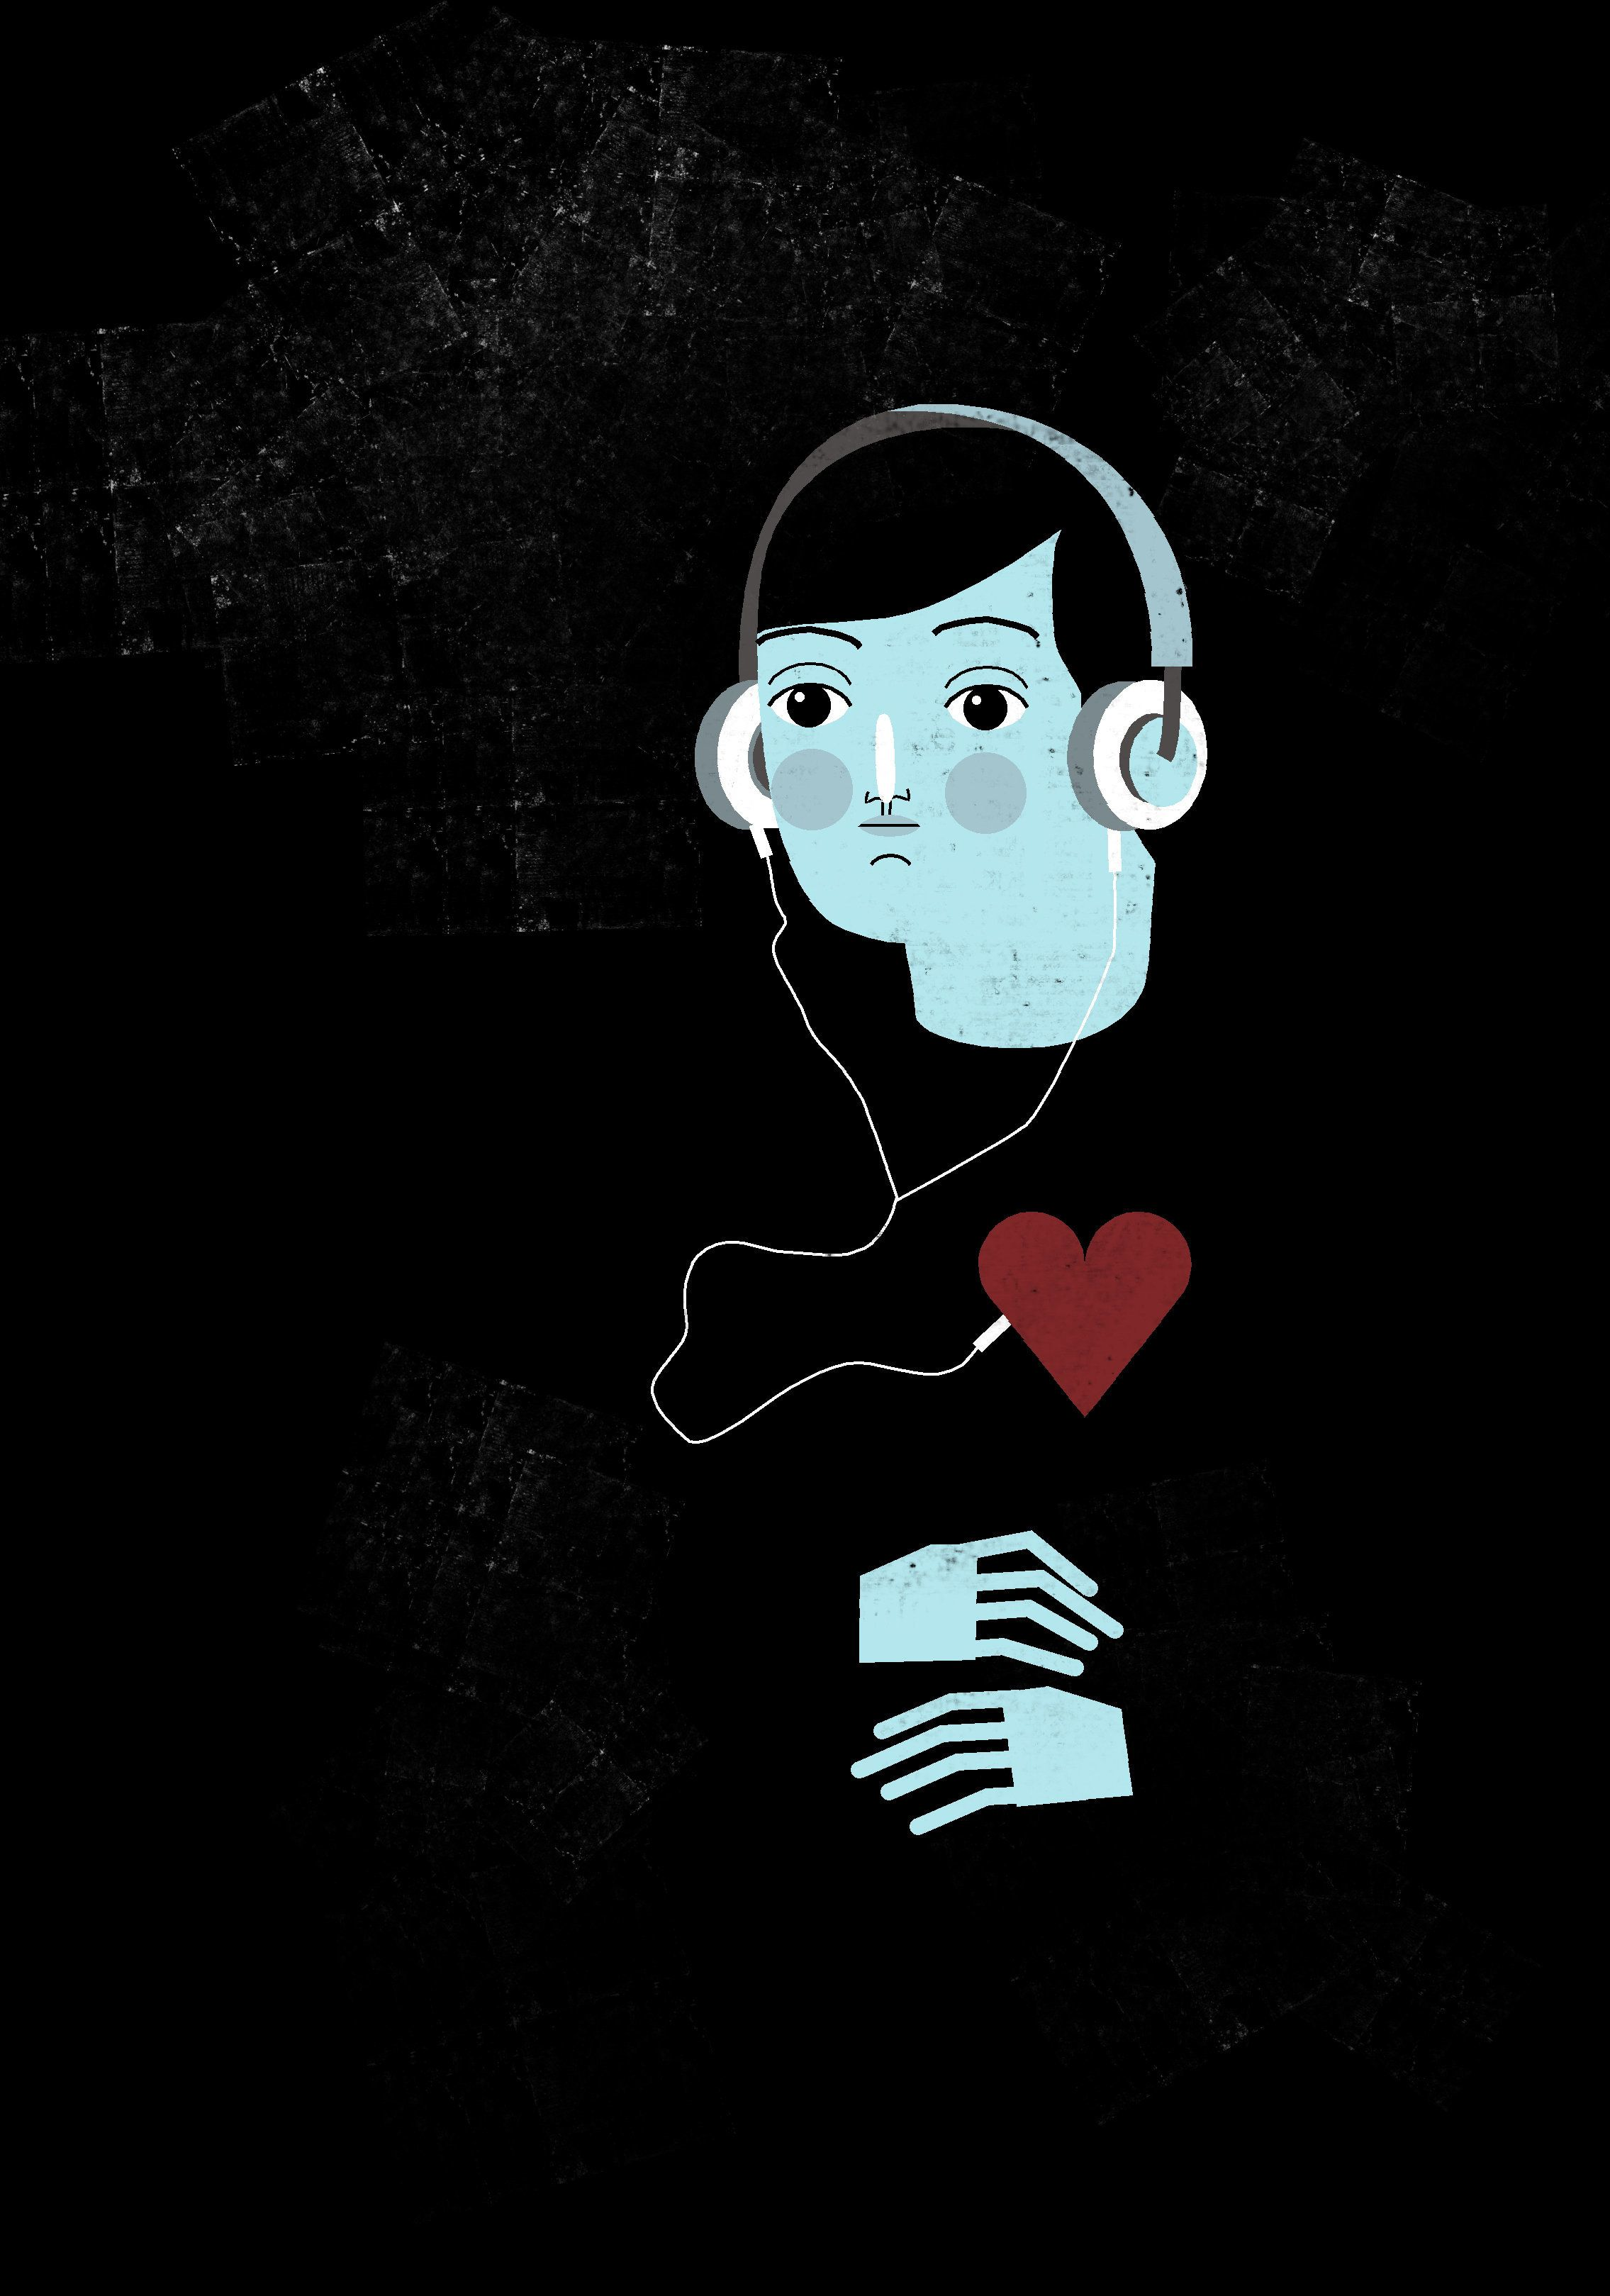 Man wearing headphone and it's pin is joint to the heart.